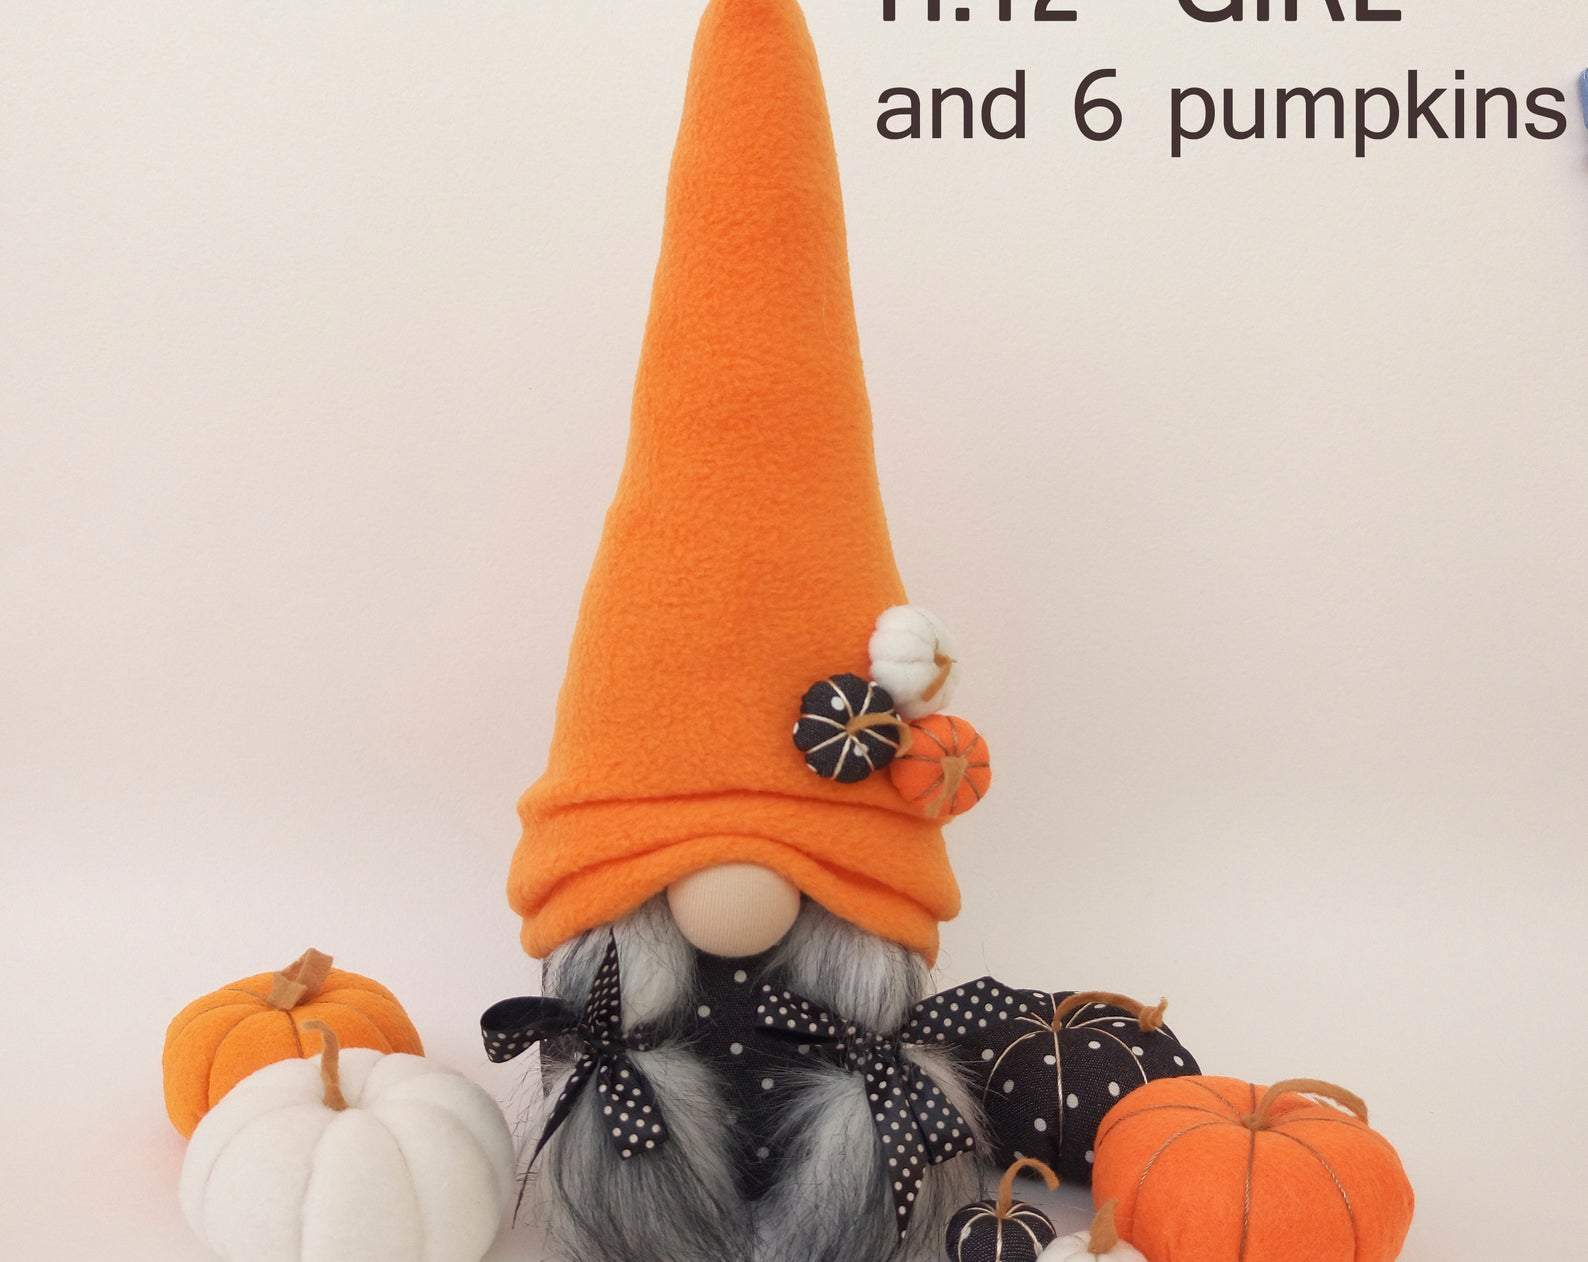 Halloween Gnomes with 6 Pumpkins Fall Gnome Stuffed Gnome Dolls Autumn Gnome Gift Thanksgiving Décor Orange Plush Gnome Tiered Tray Decor